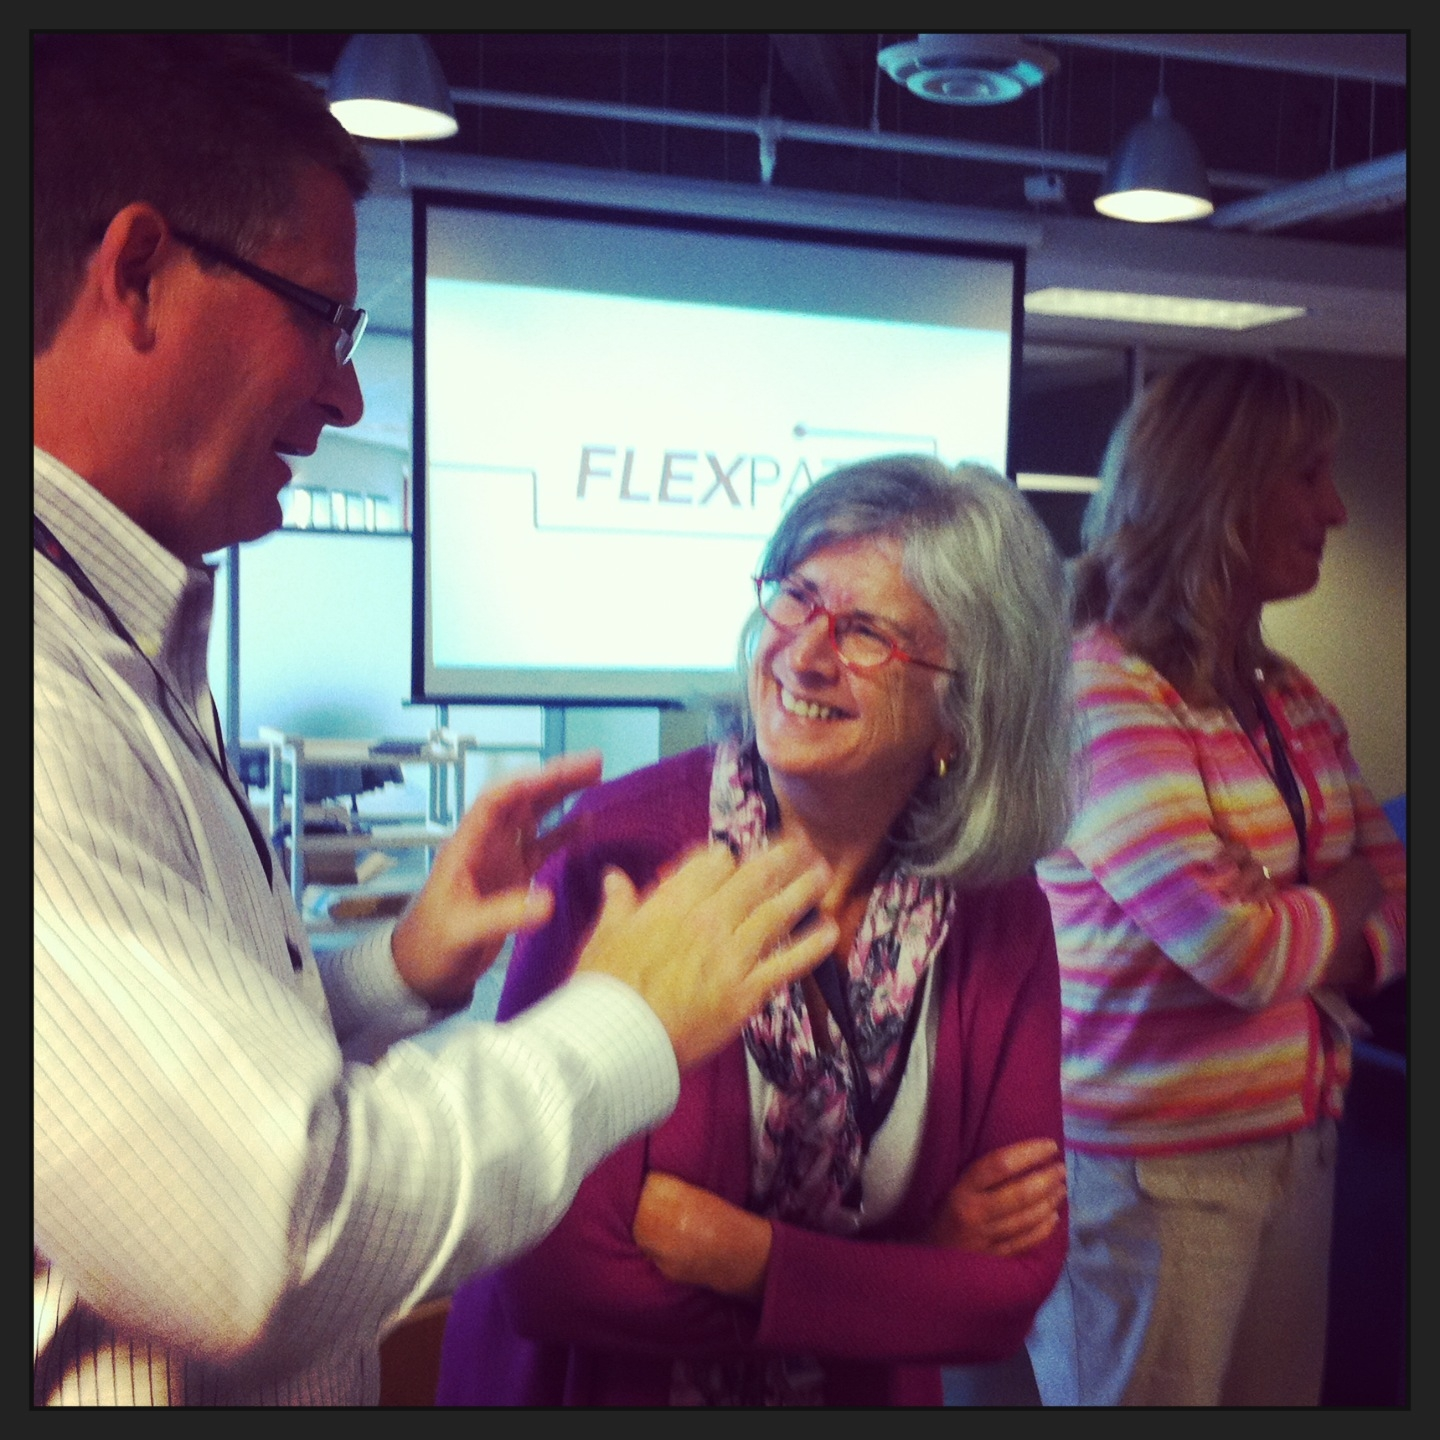 Capella's General Counsel Greg Thom and Chief Academic Officer Deb Bushway chatting at the FlexPath employee celebration.